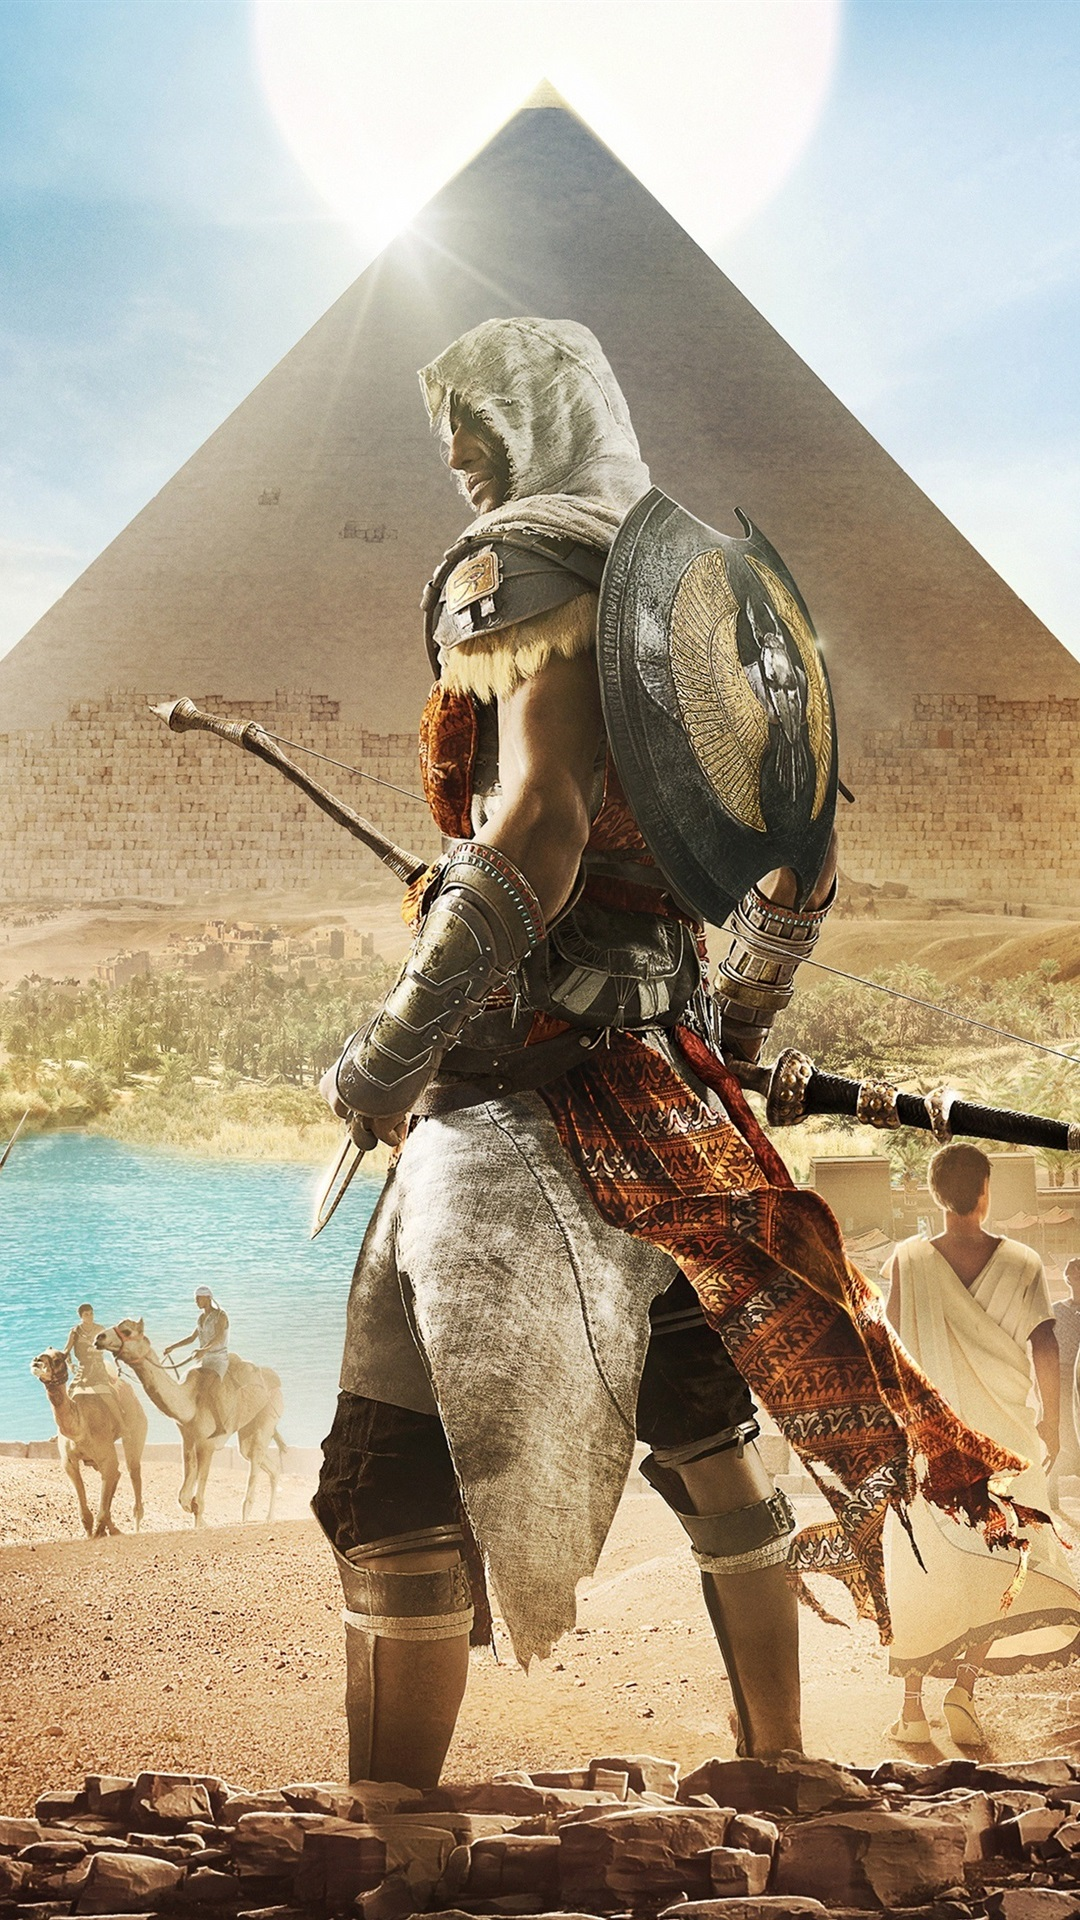 Assassin S Creed Origins Egypt Pyramid 1080x1920 Iphone 8 7 6 6s Plus Wallpaper Background Picture Image